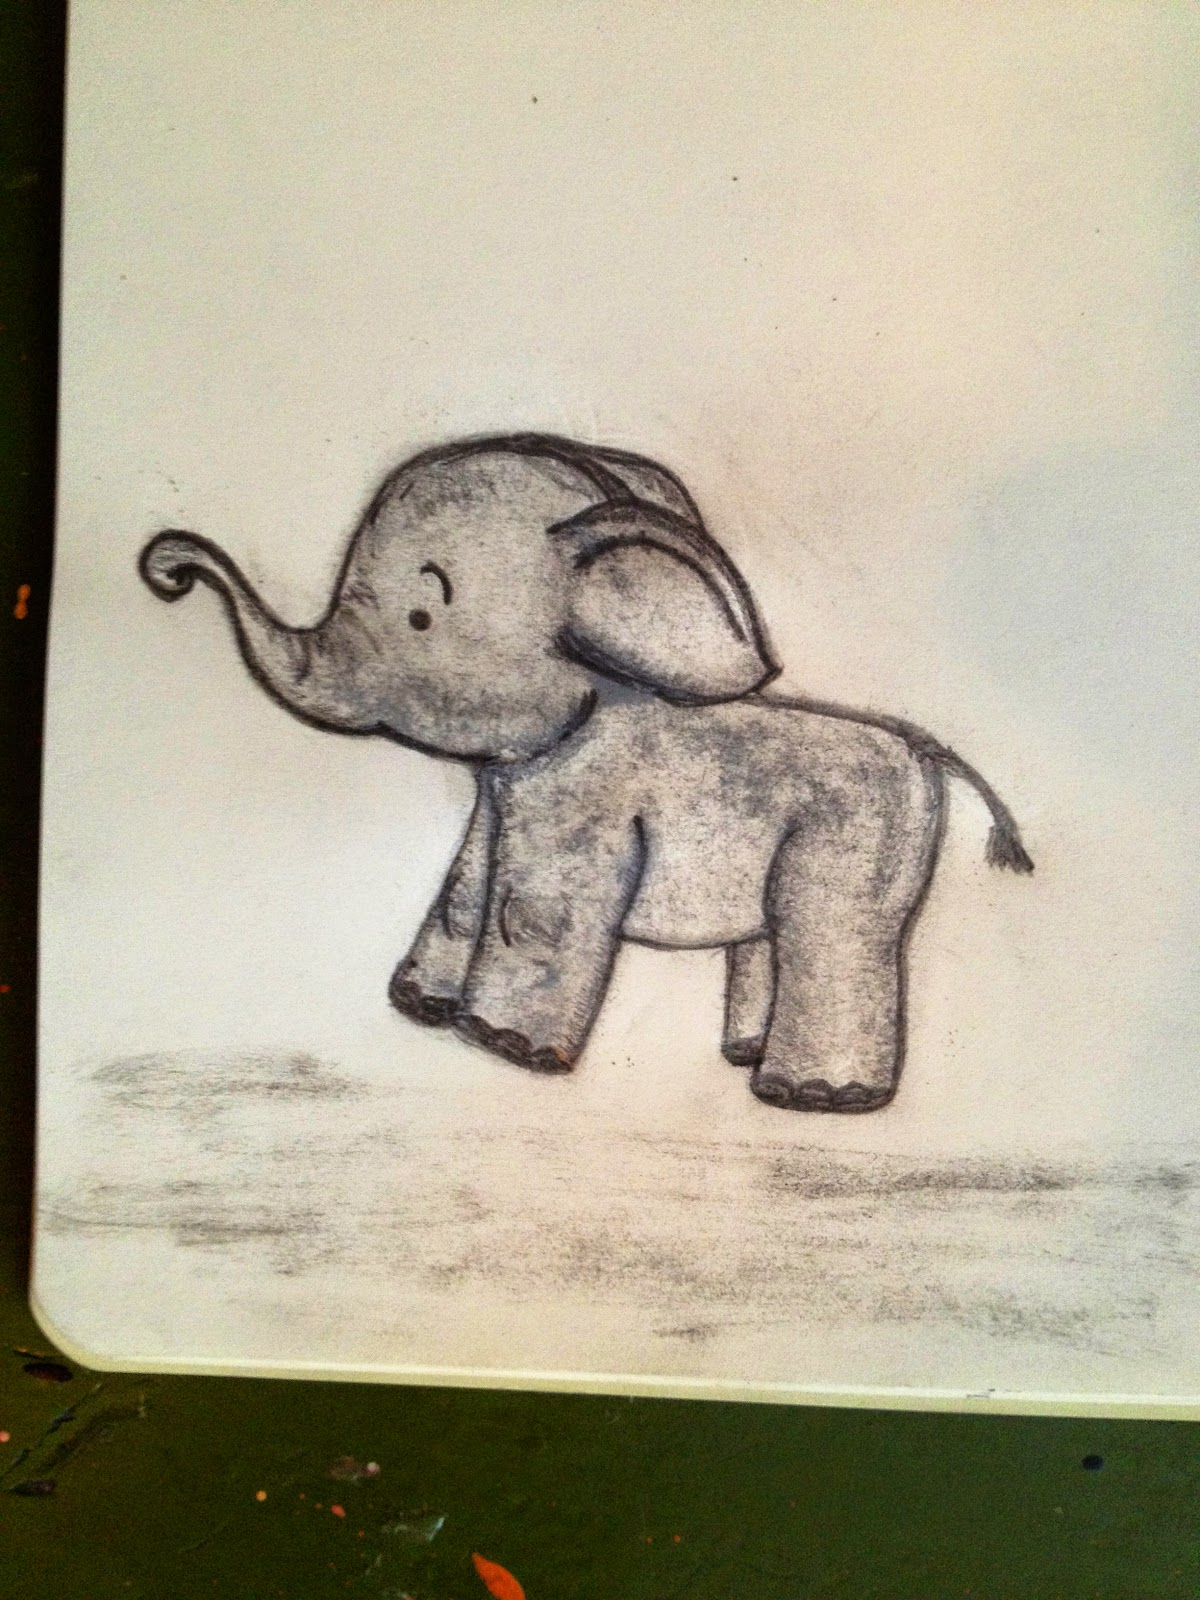 Baby Room Drawing: LifeLookLens: Baby Elephant Drawings